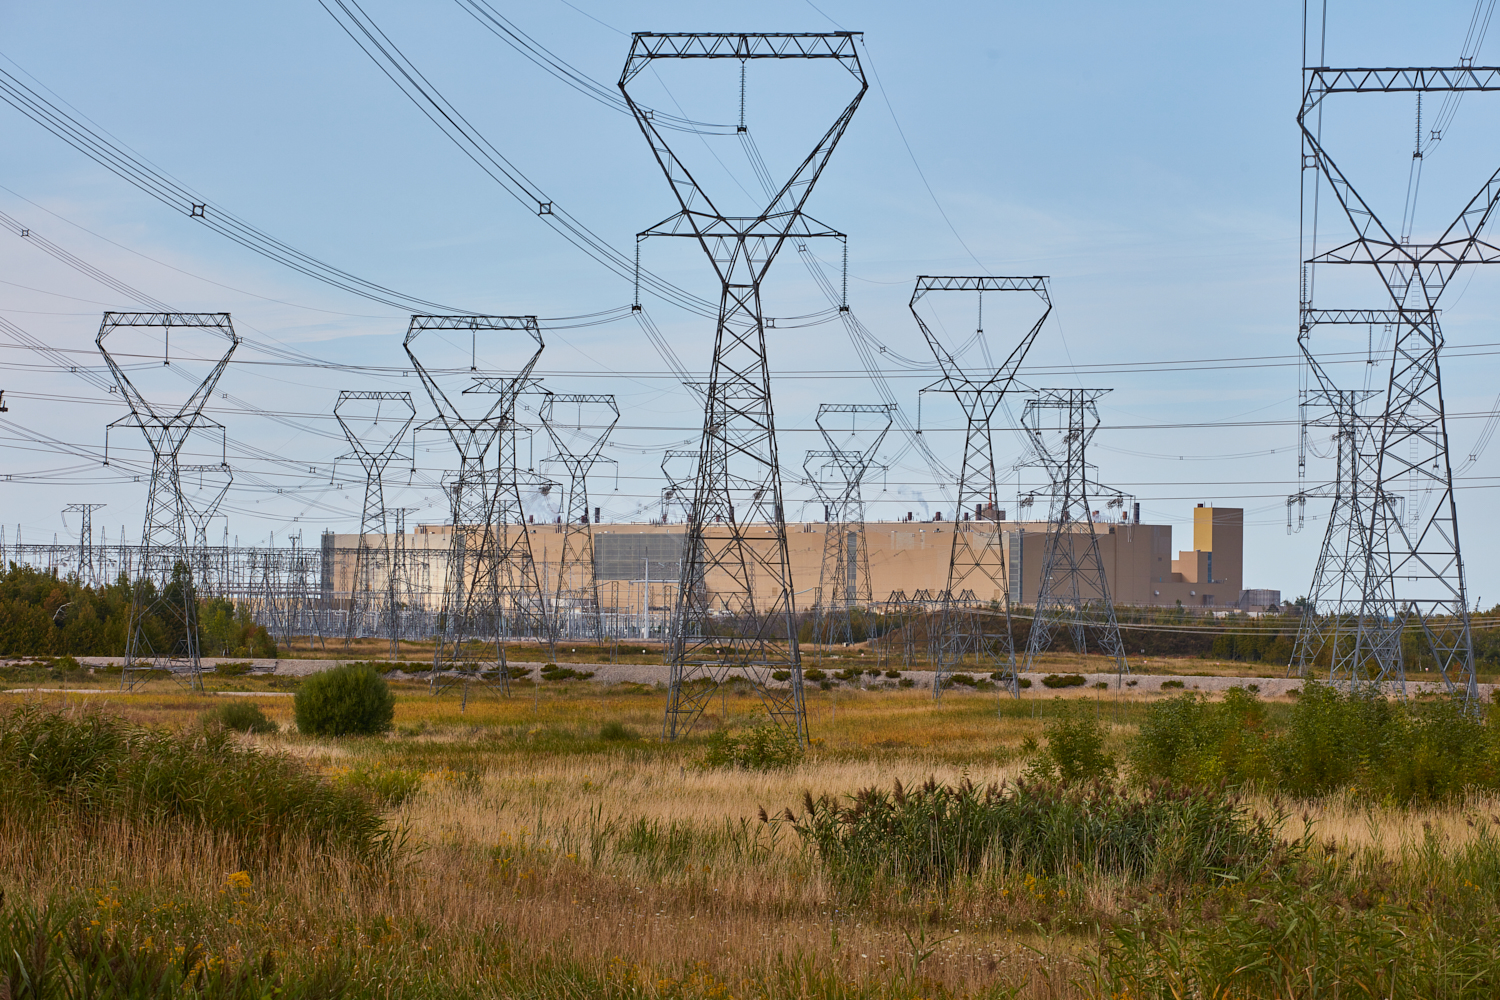 Bruce Power Unit 1 hits milestone of 600 days of reliable operation delivering clean power to Ontario